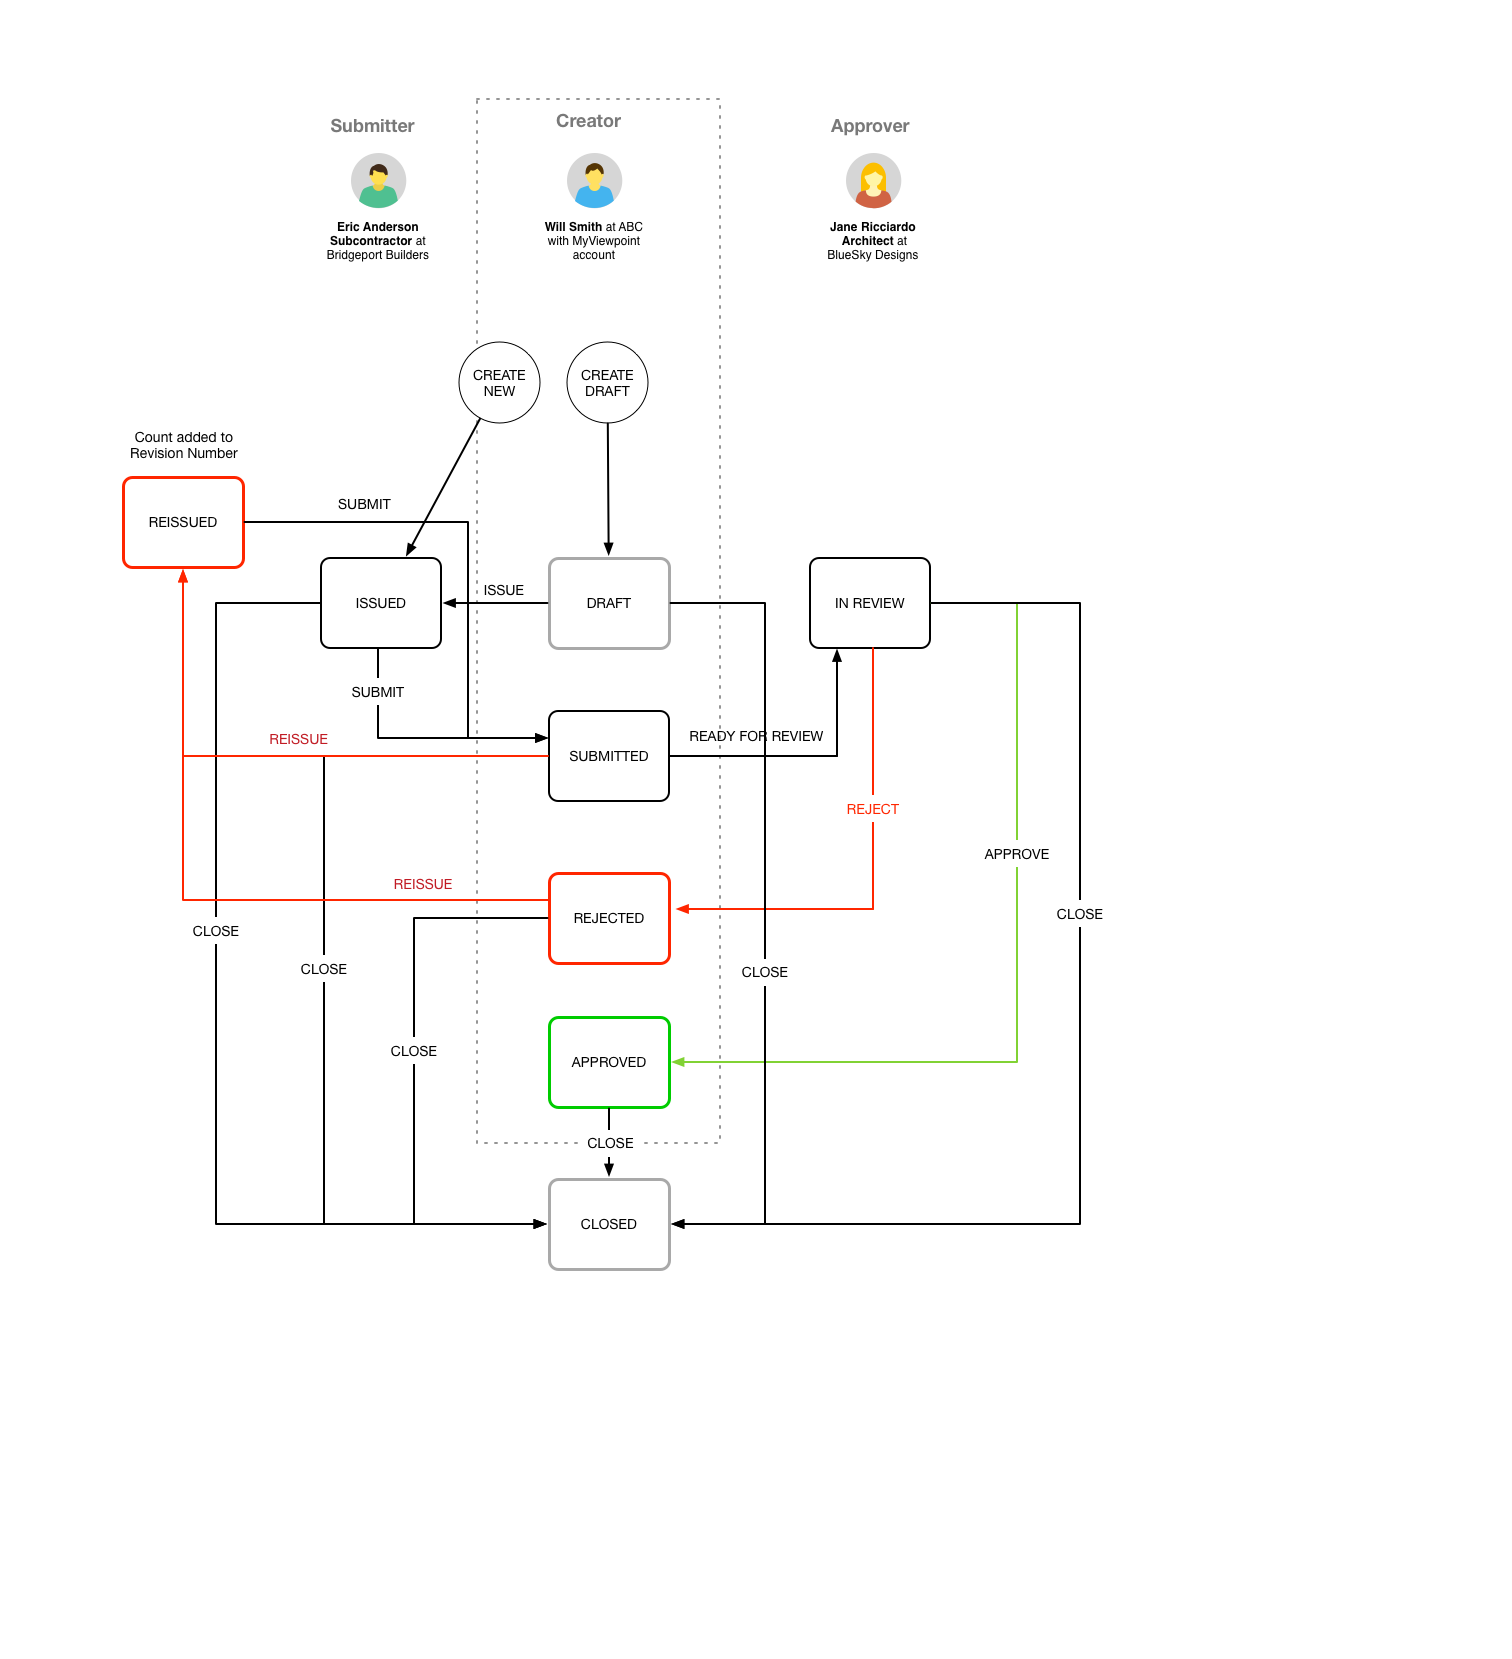 Luis Ponce De Len Viewpoint Online Submittals Ux Process Flow Diagram User Experience Workflow Personas Wireframes Collaborative To Define The An Innovative Solution Manage